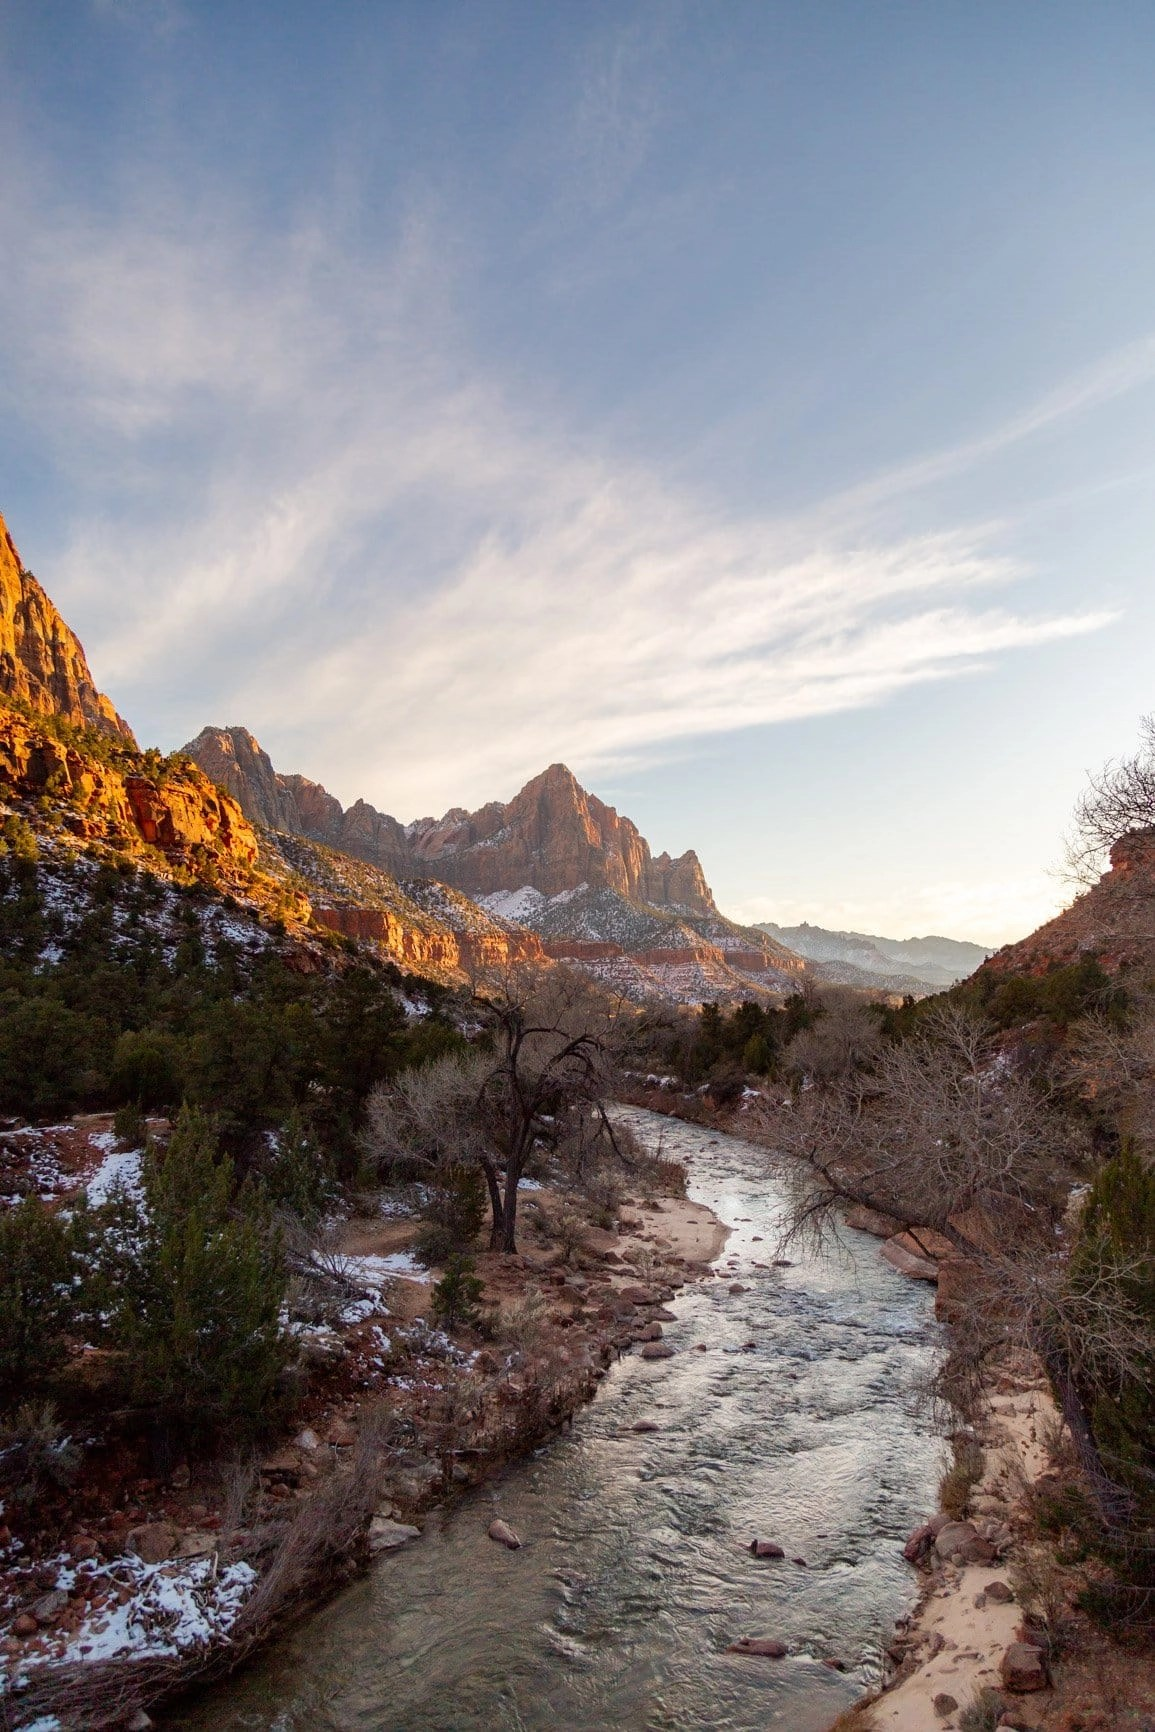 the Virgin River flowing through the canyon walls of Zion to the iconic Watchmen Tower